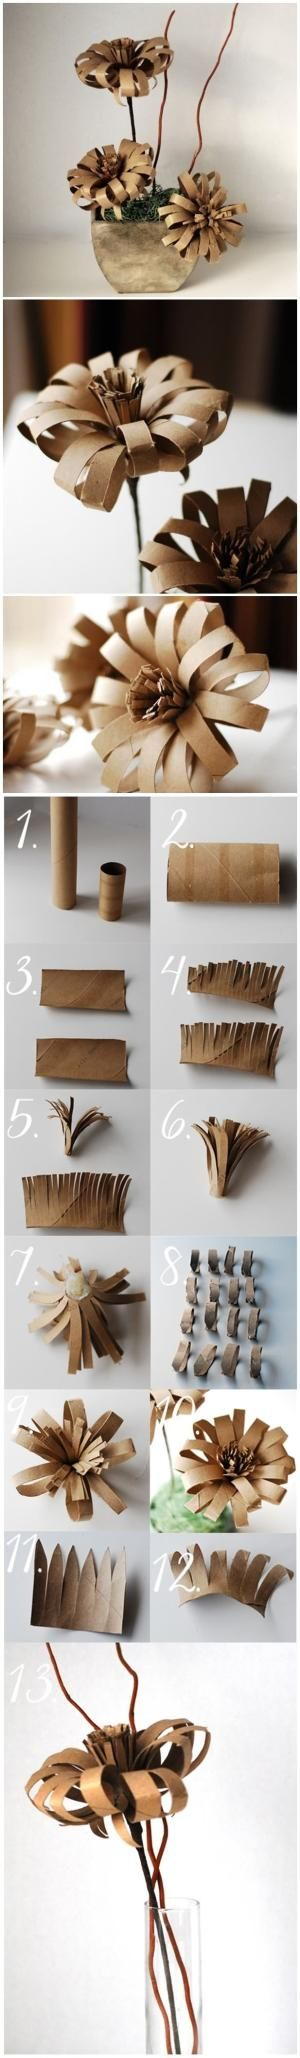 Diy Toilet Paper Roll Flowers by lawanda